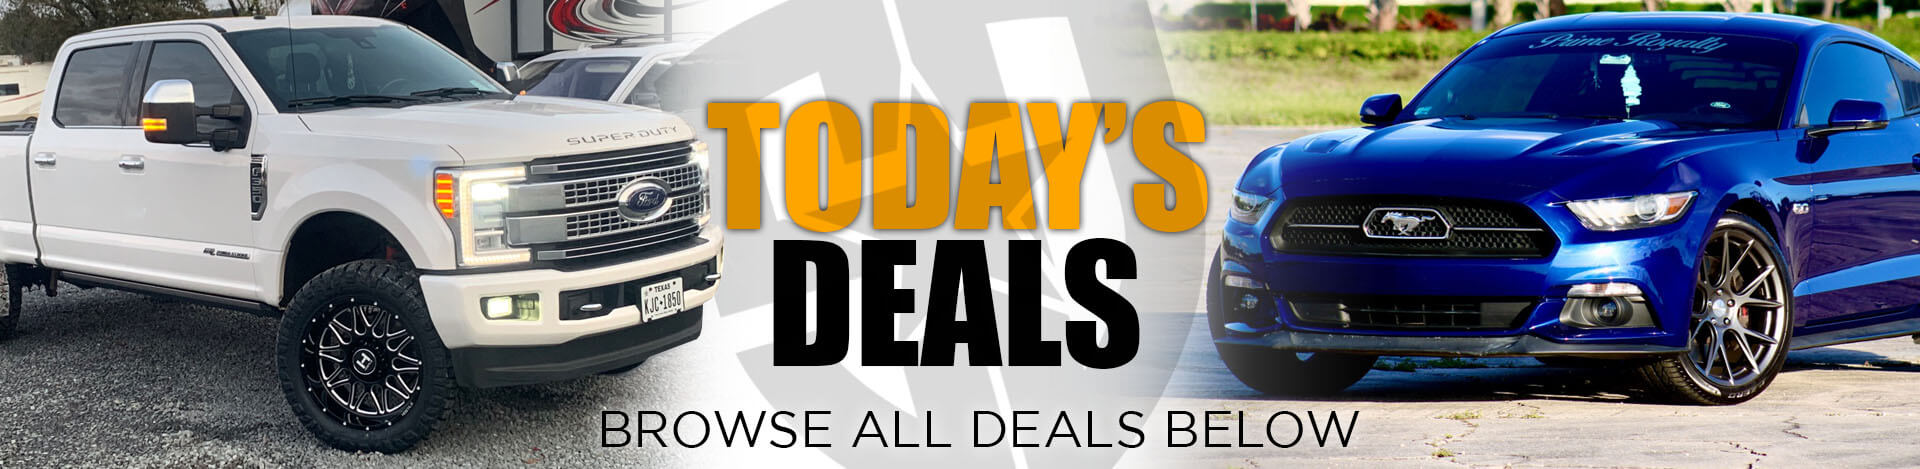 Today's Deals Banner Desktop